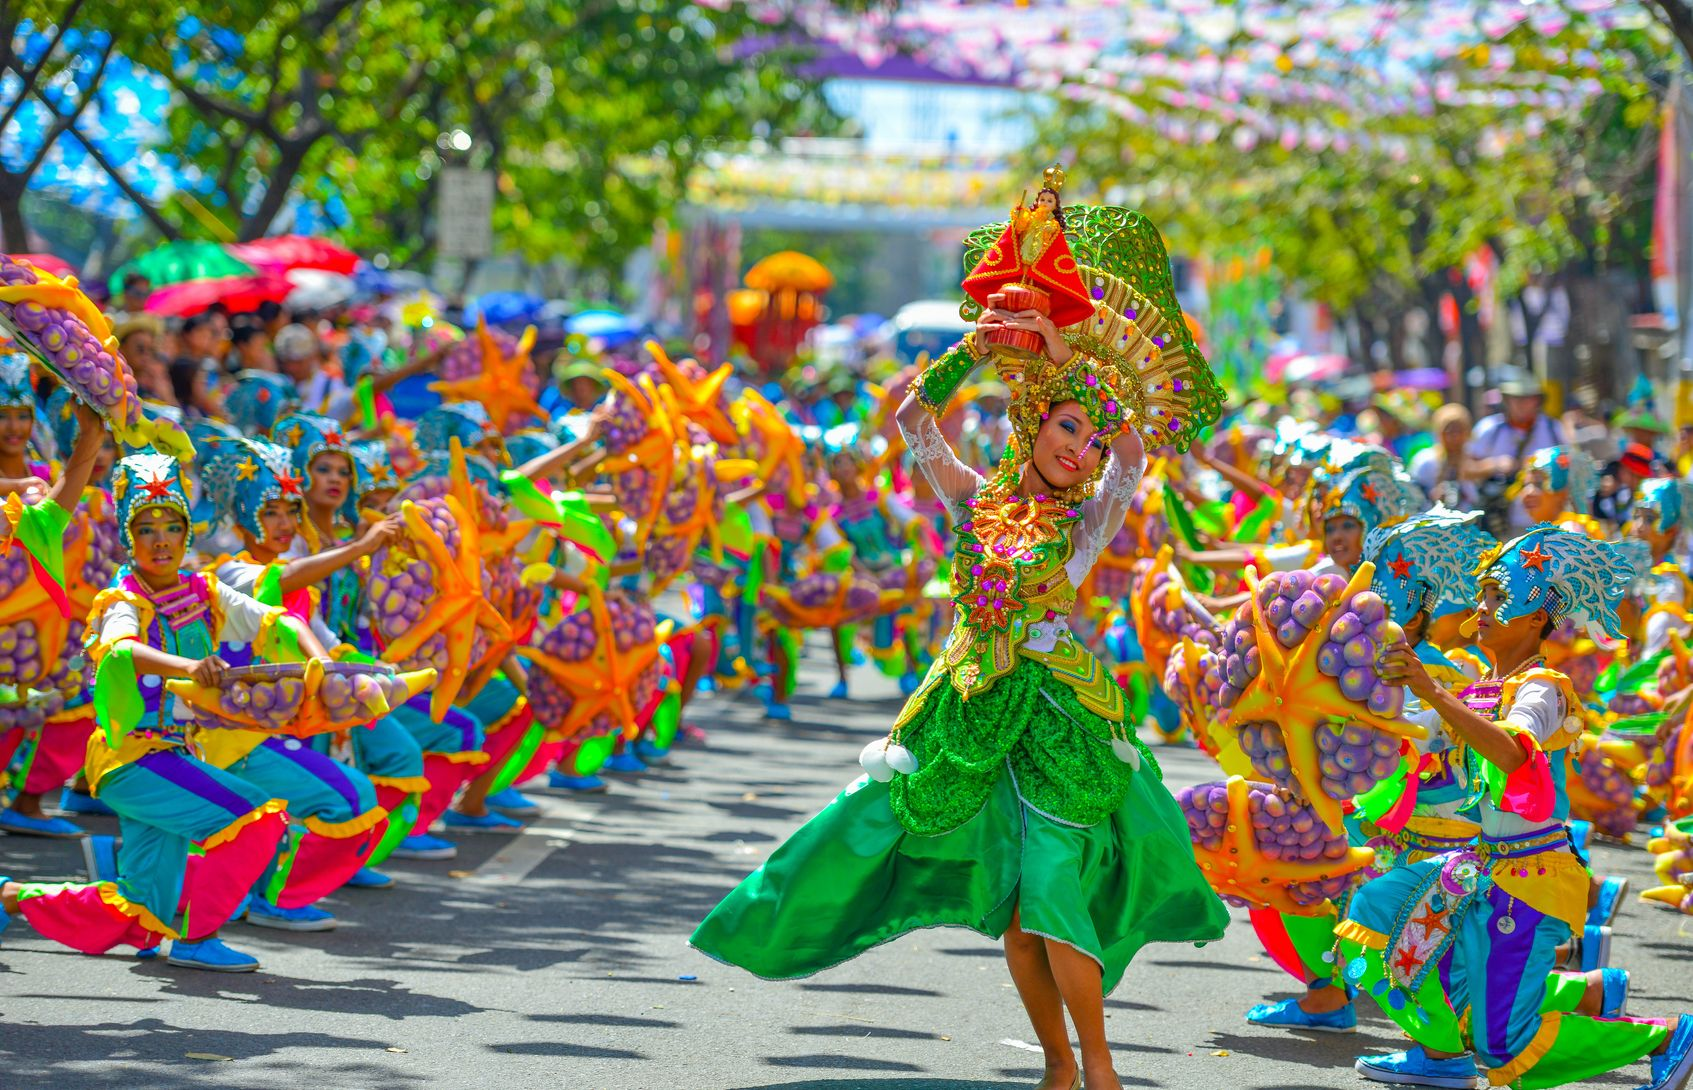 Participants of a local festival clad in colorful costumes dance on the streets in Cebu City, one of the best places to visit in the Philippines